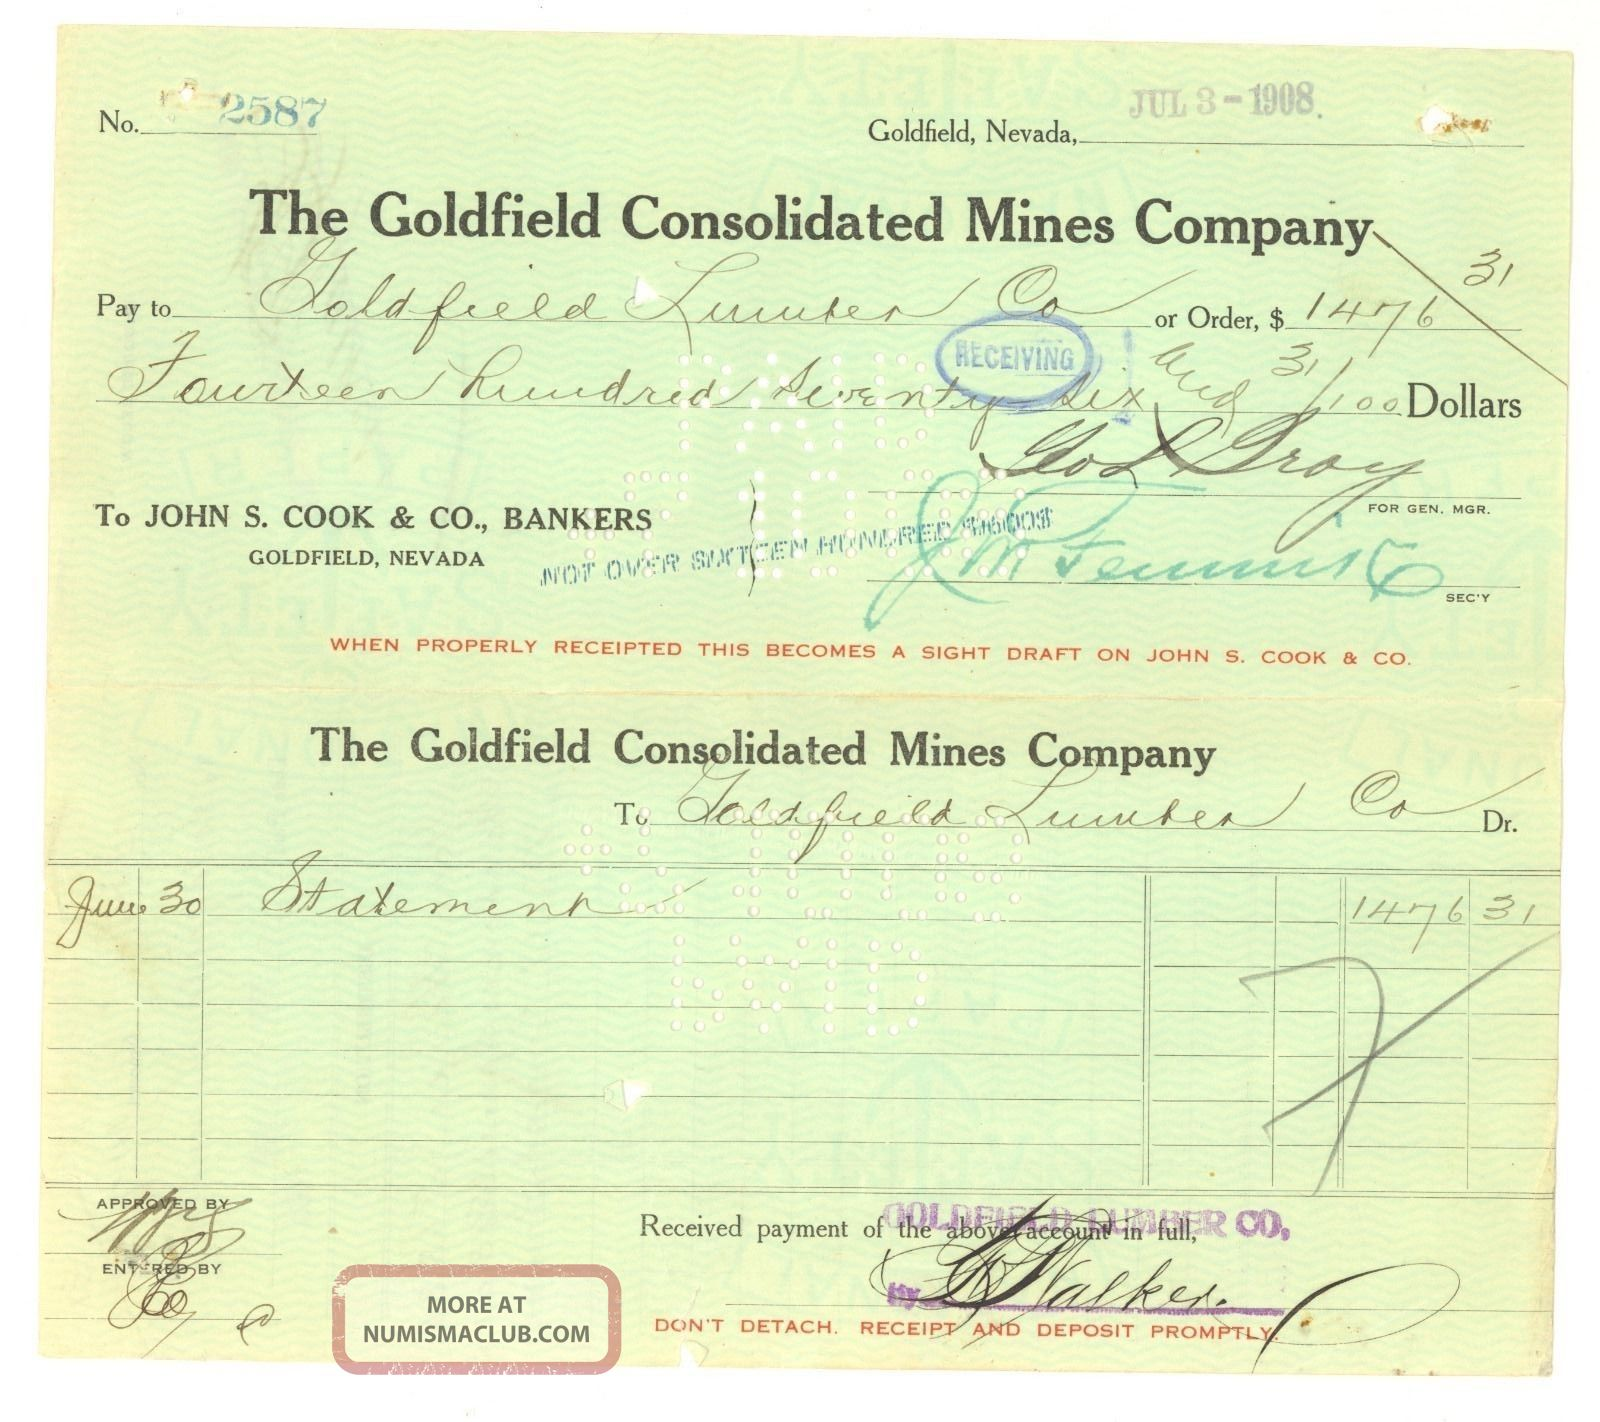 The Goldfield Consolidated Mines Company - Voucher Check - Jul 3rd,  1908 Stocks & Bonds, Scripophily photo